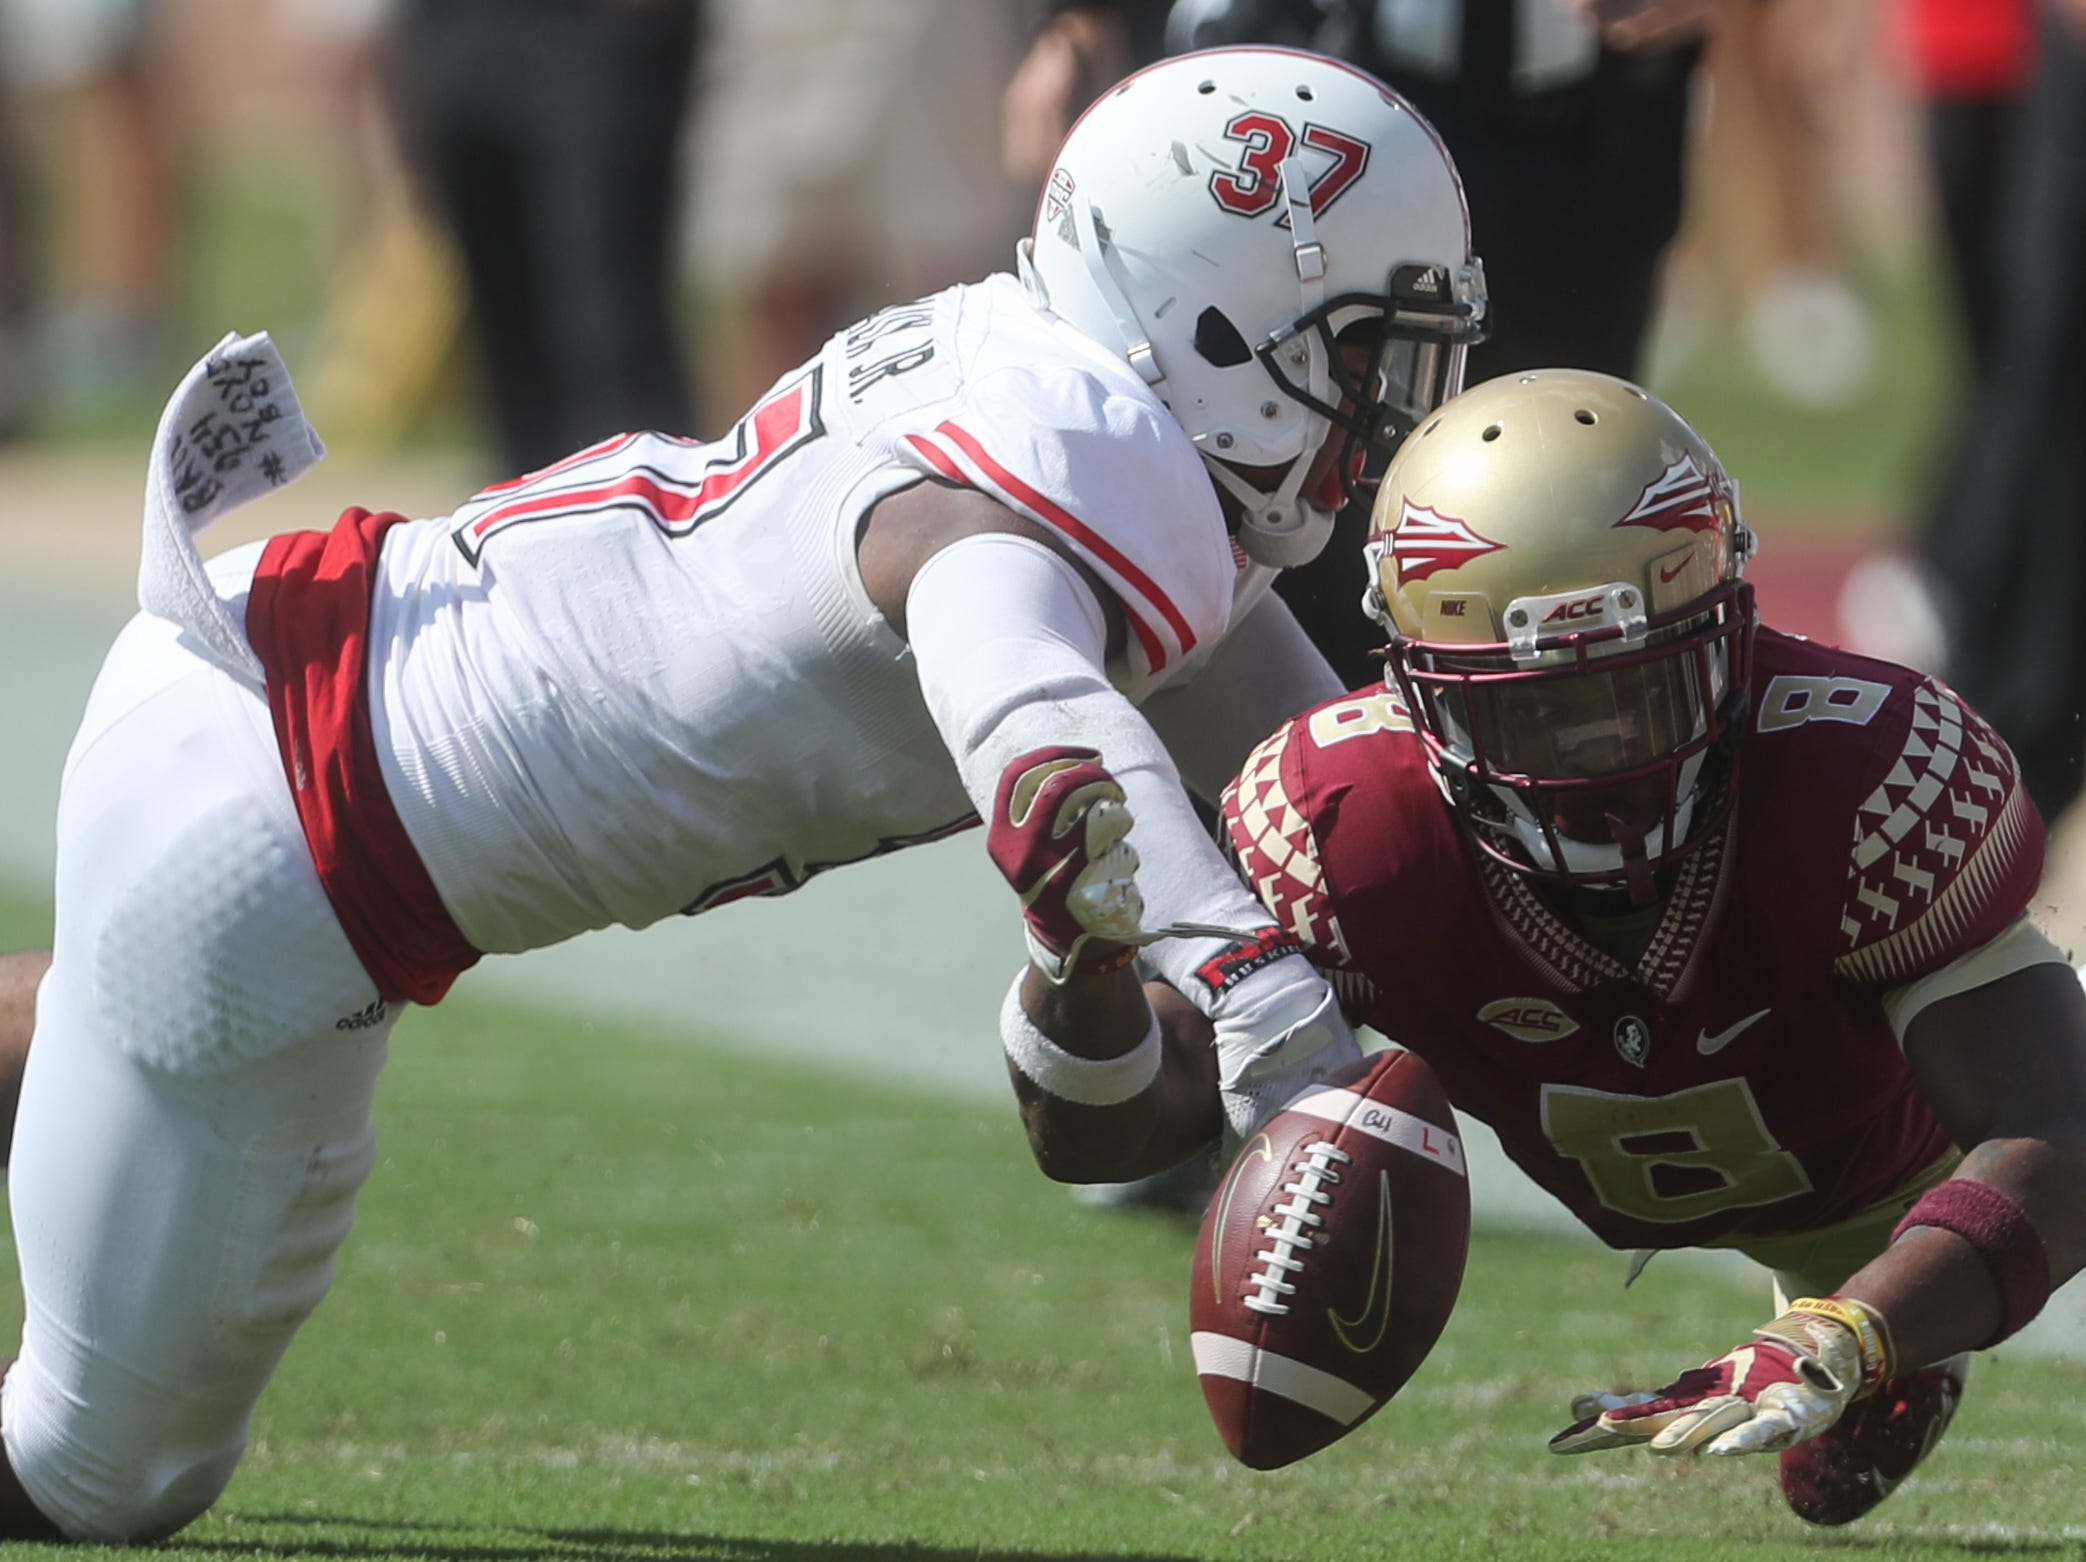 Northern Illinois Huskies linebacker Lance Deveaux Jr. (37) tackles Florida State Seminoles wide receiver Nyqwan Murray (8) during a game between the Florida State University Seminoles and the Northern Illinois University Huskies at Doak S. Campbell Stadium in Tallahassee, Fla. Saturday, September 22, 2018.